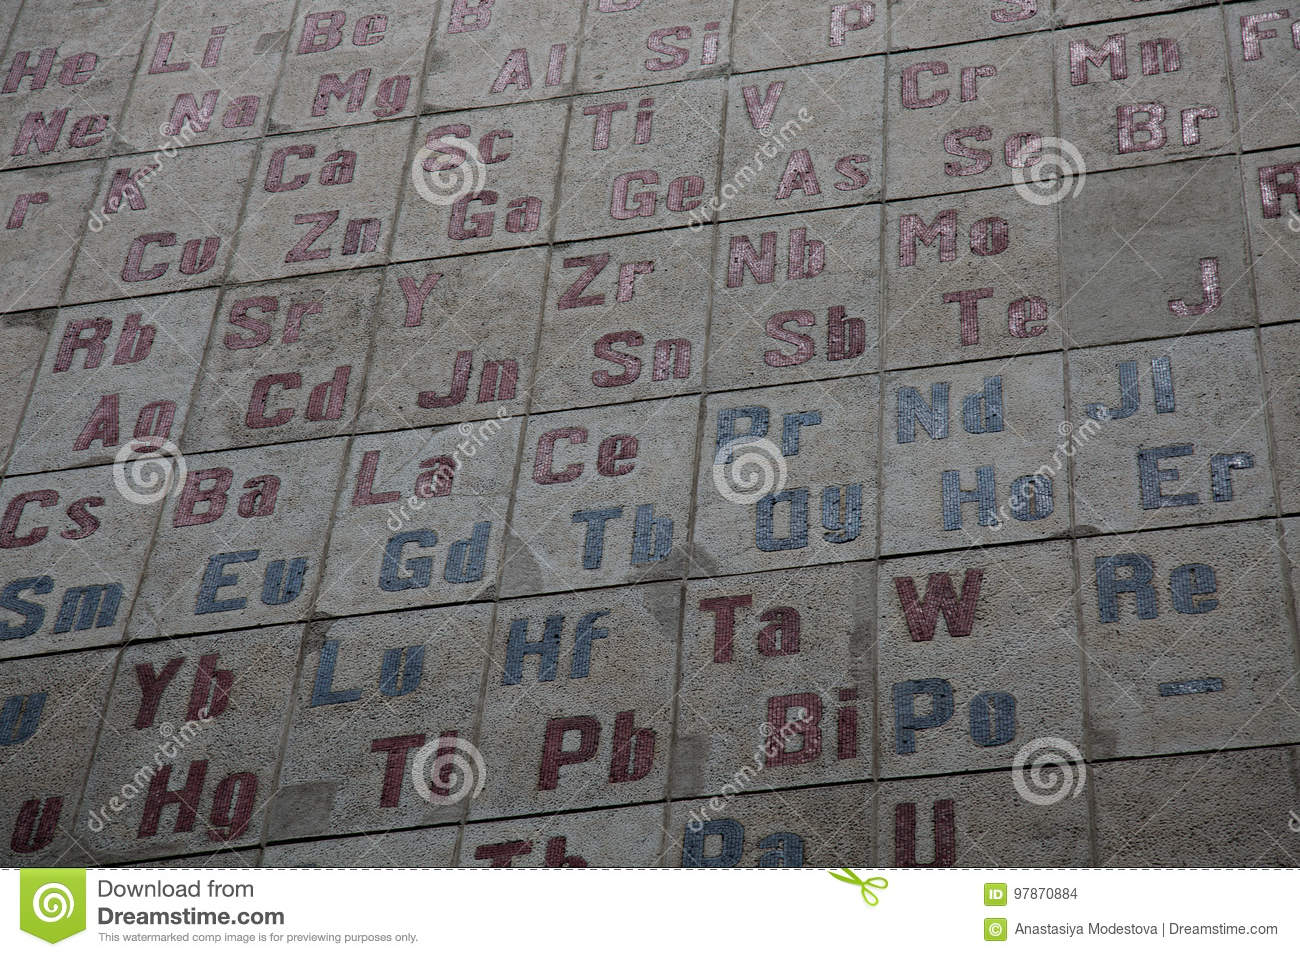 Periodic table chemical elements symbol numbers stock photo image periodic table chemical elements symbol numbers urtaz Image collections